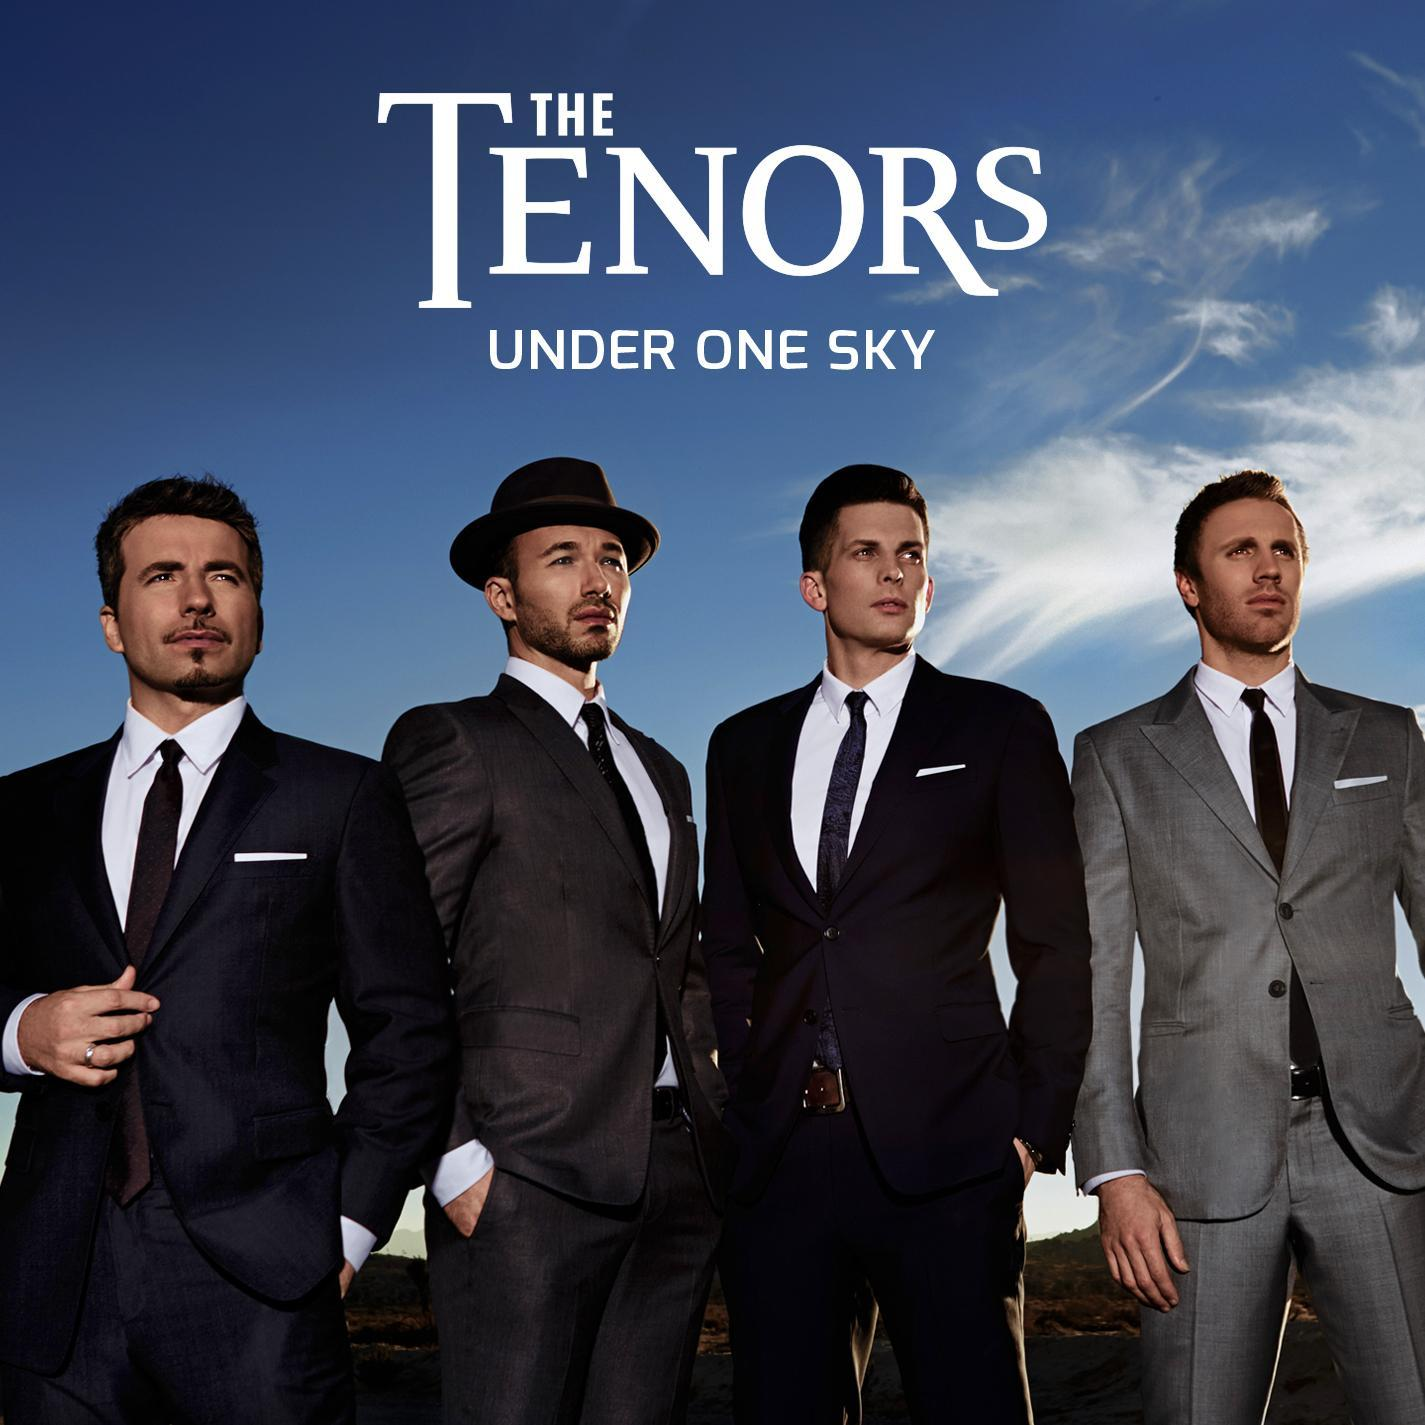 tenors.jpeg - 173.29 kB